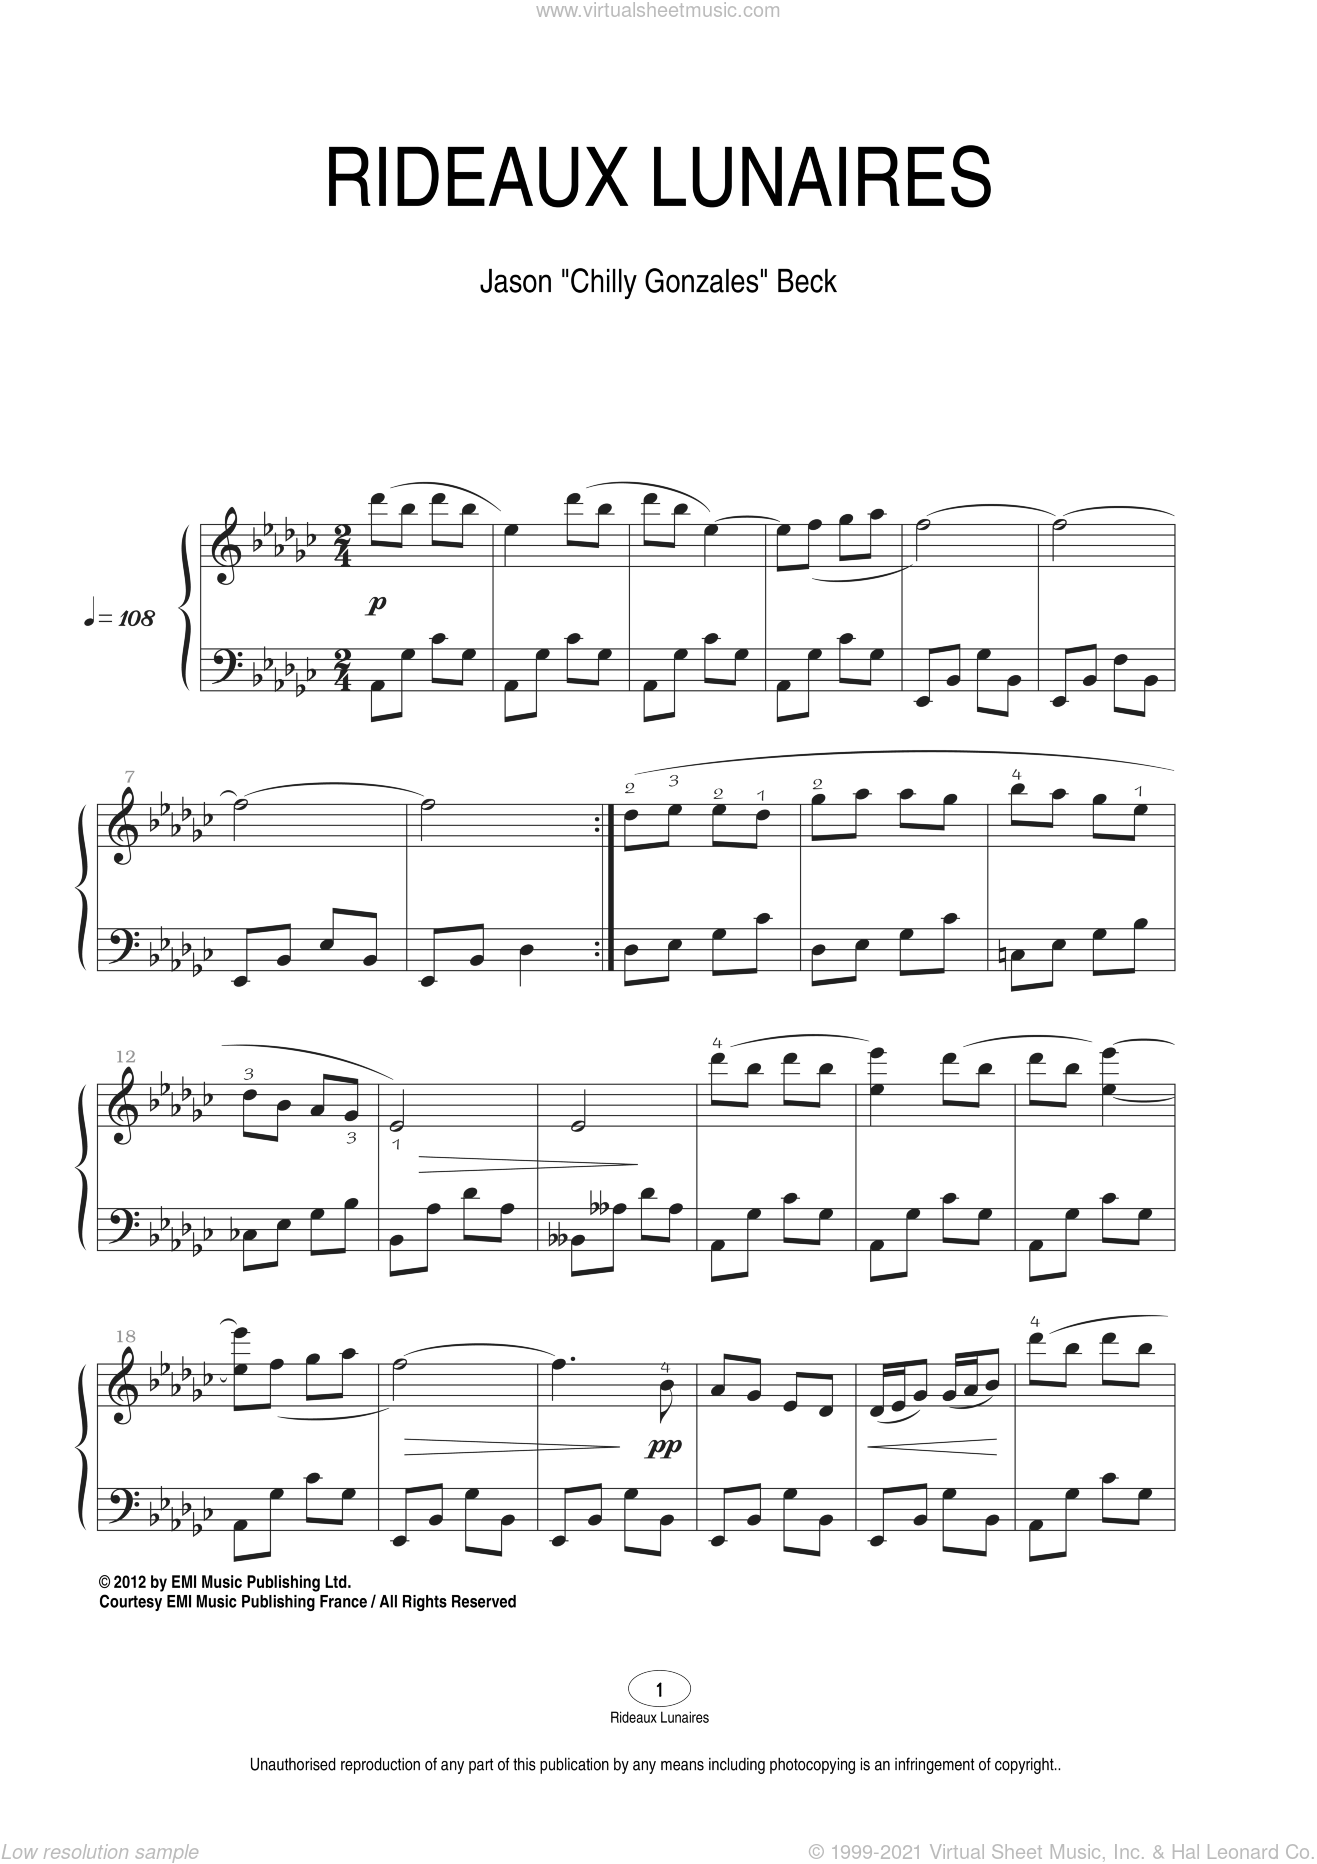 Rideaux Lunaires sheet music for piano solo by Chilly Gonzales